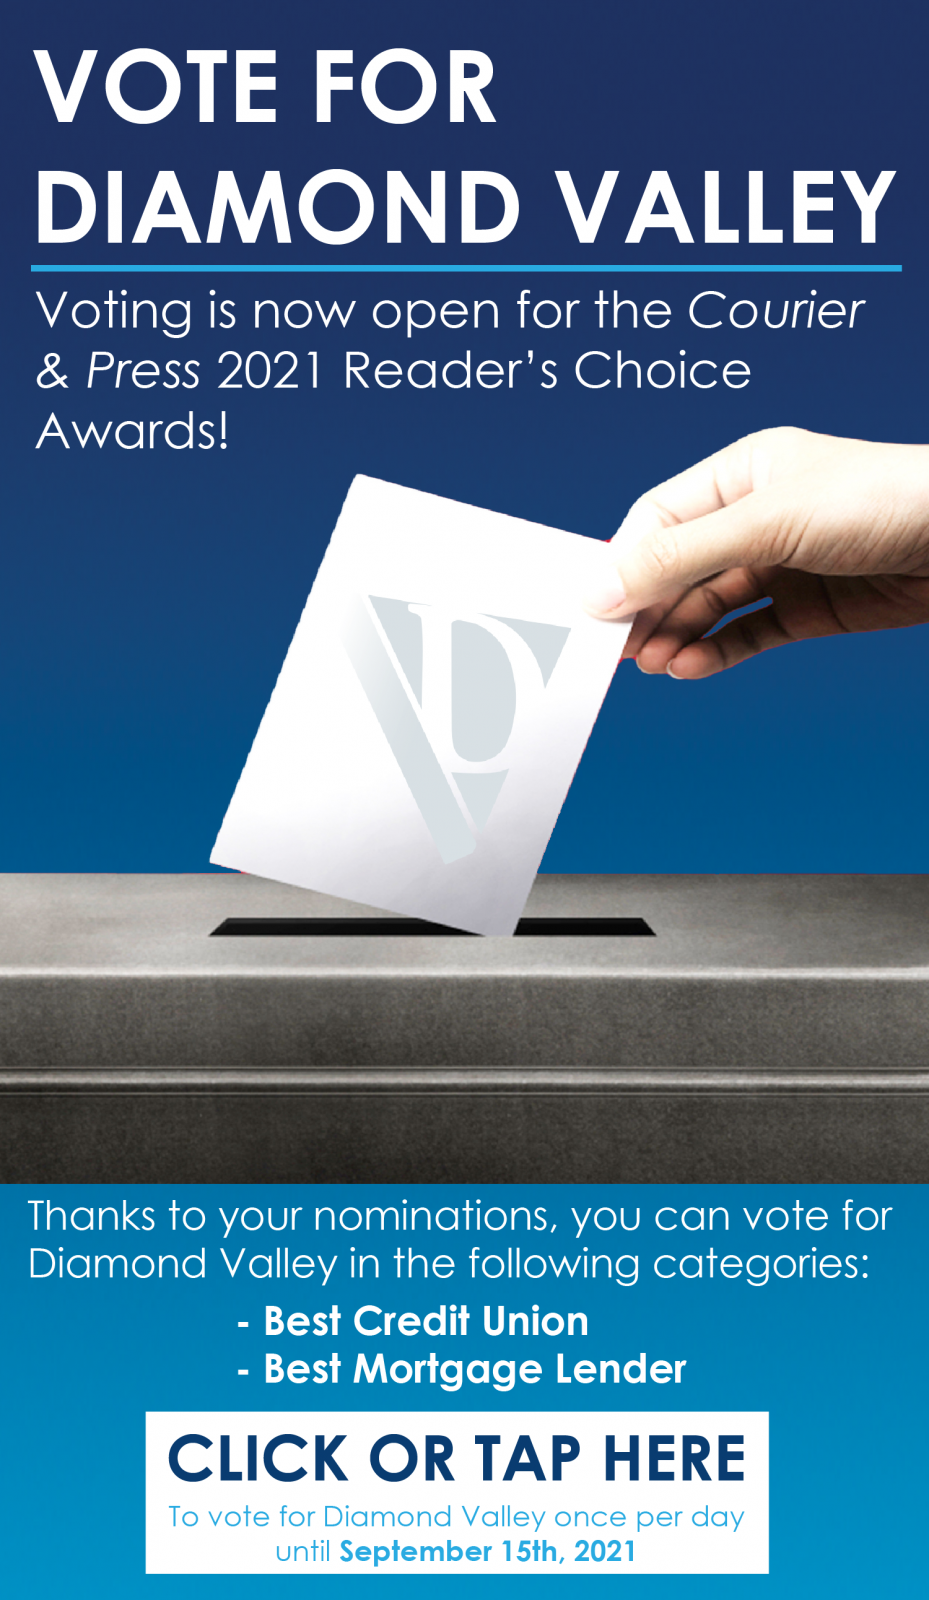 Vote for Diamond Valley in the 2021 Courier and Press Reader's Choice Awards